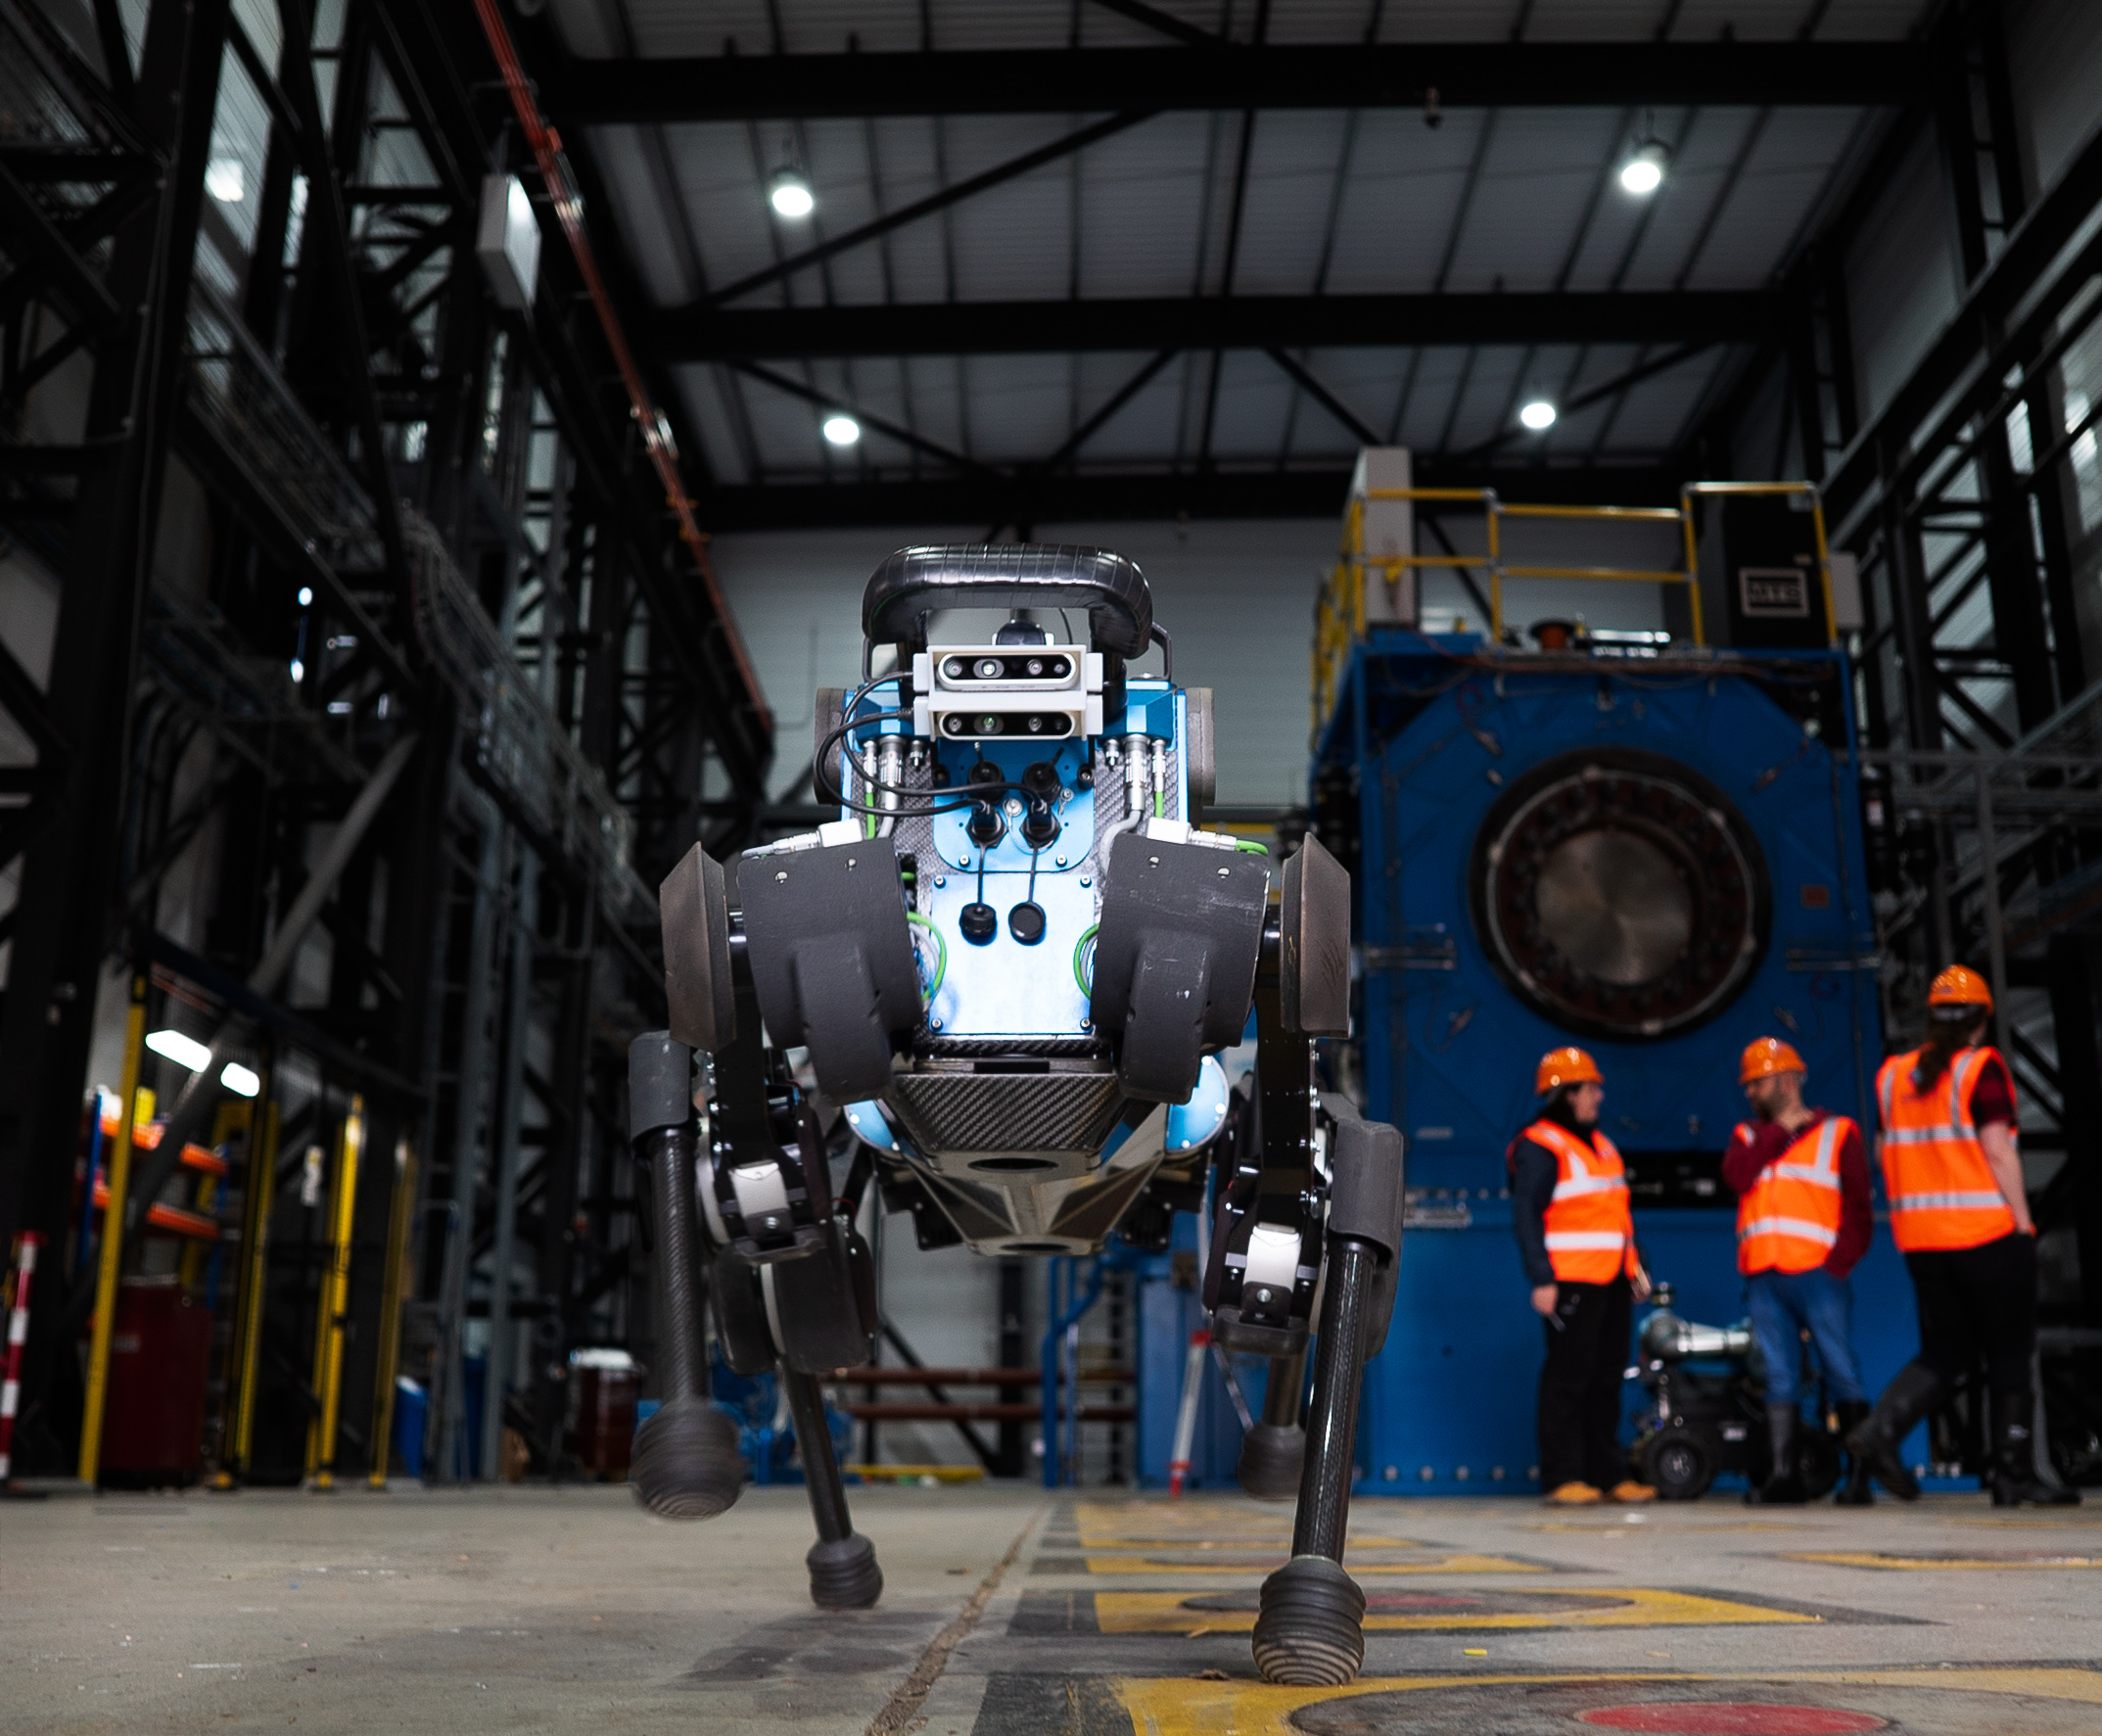 Autonomous robot in a warehouse with three people in hard hats and hi-vis vests